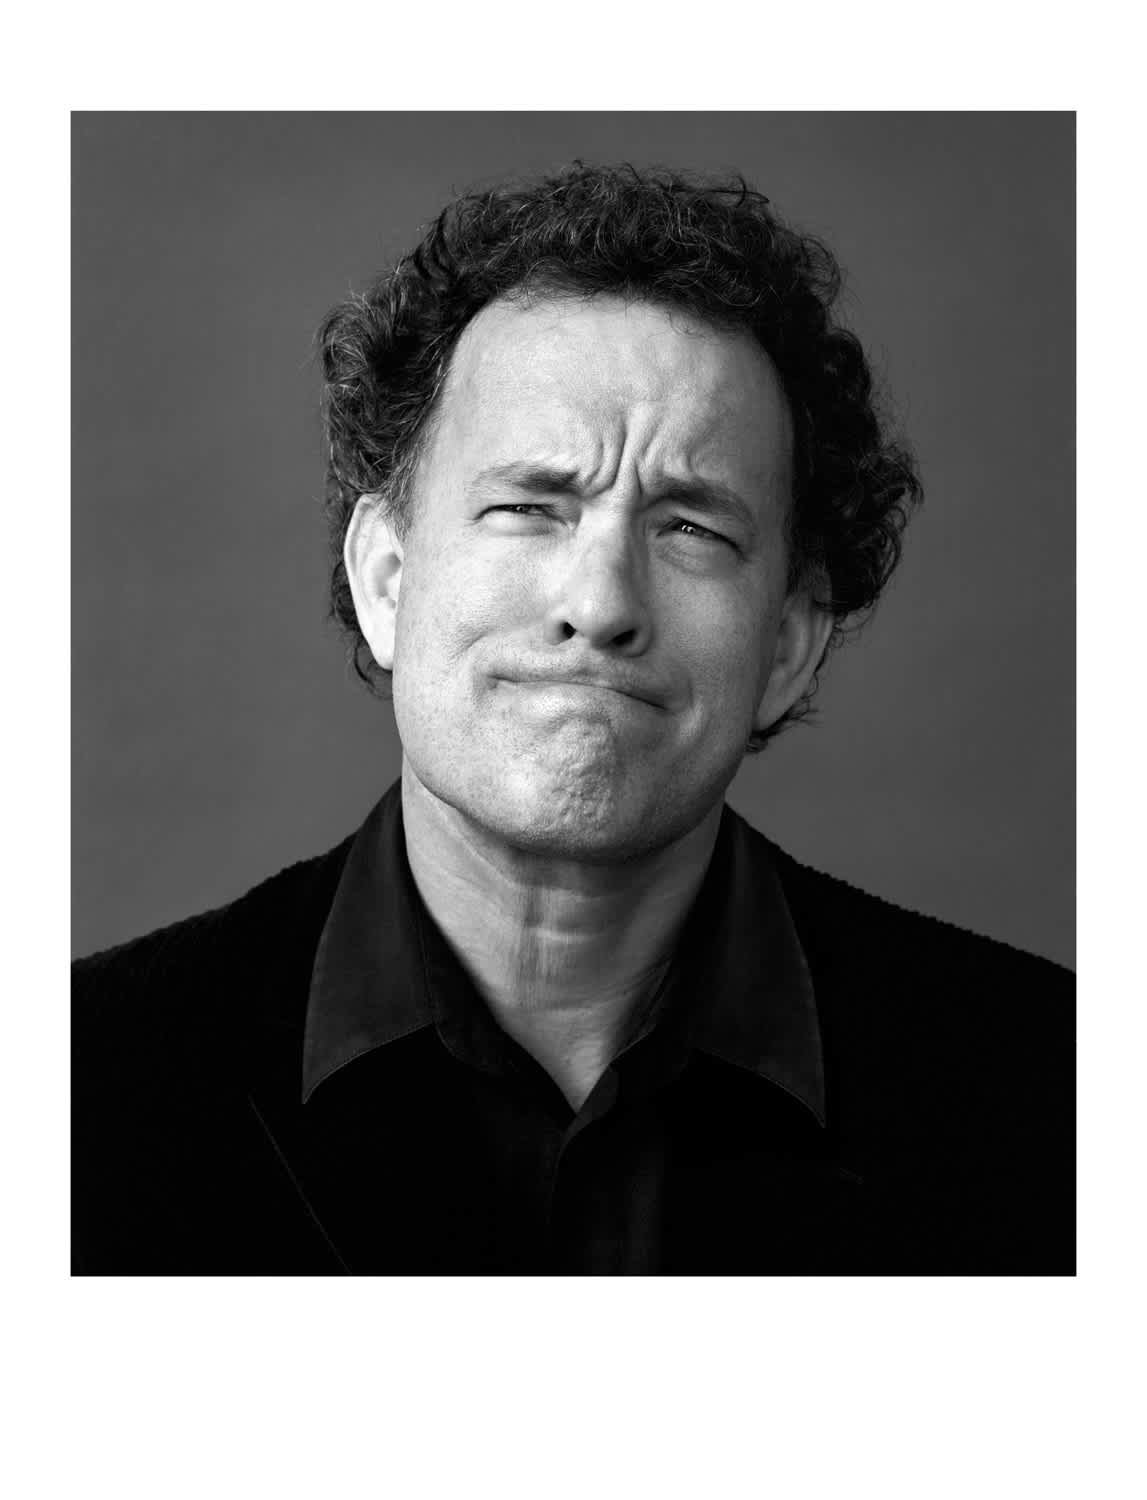 Andy Gotts Tom Hanks Co-signed C-Type Photographic Print